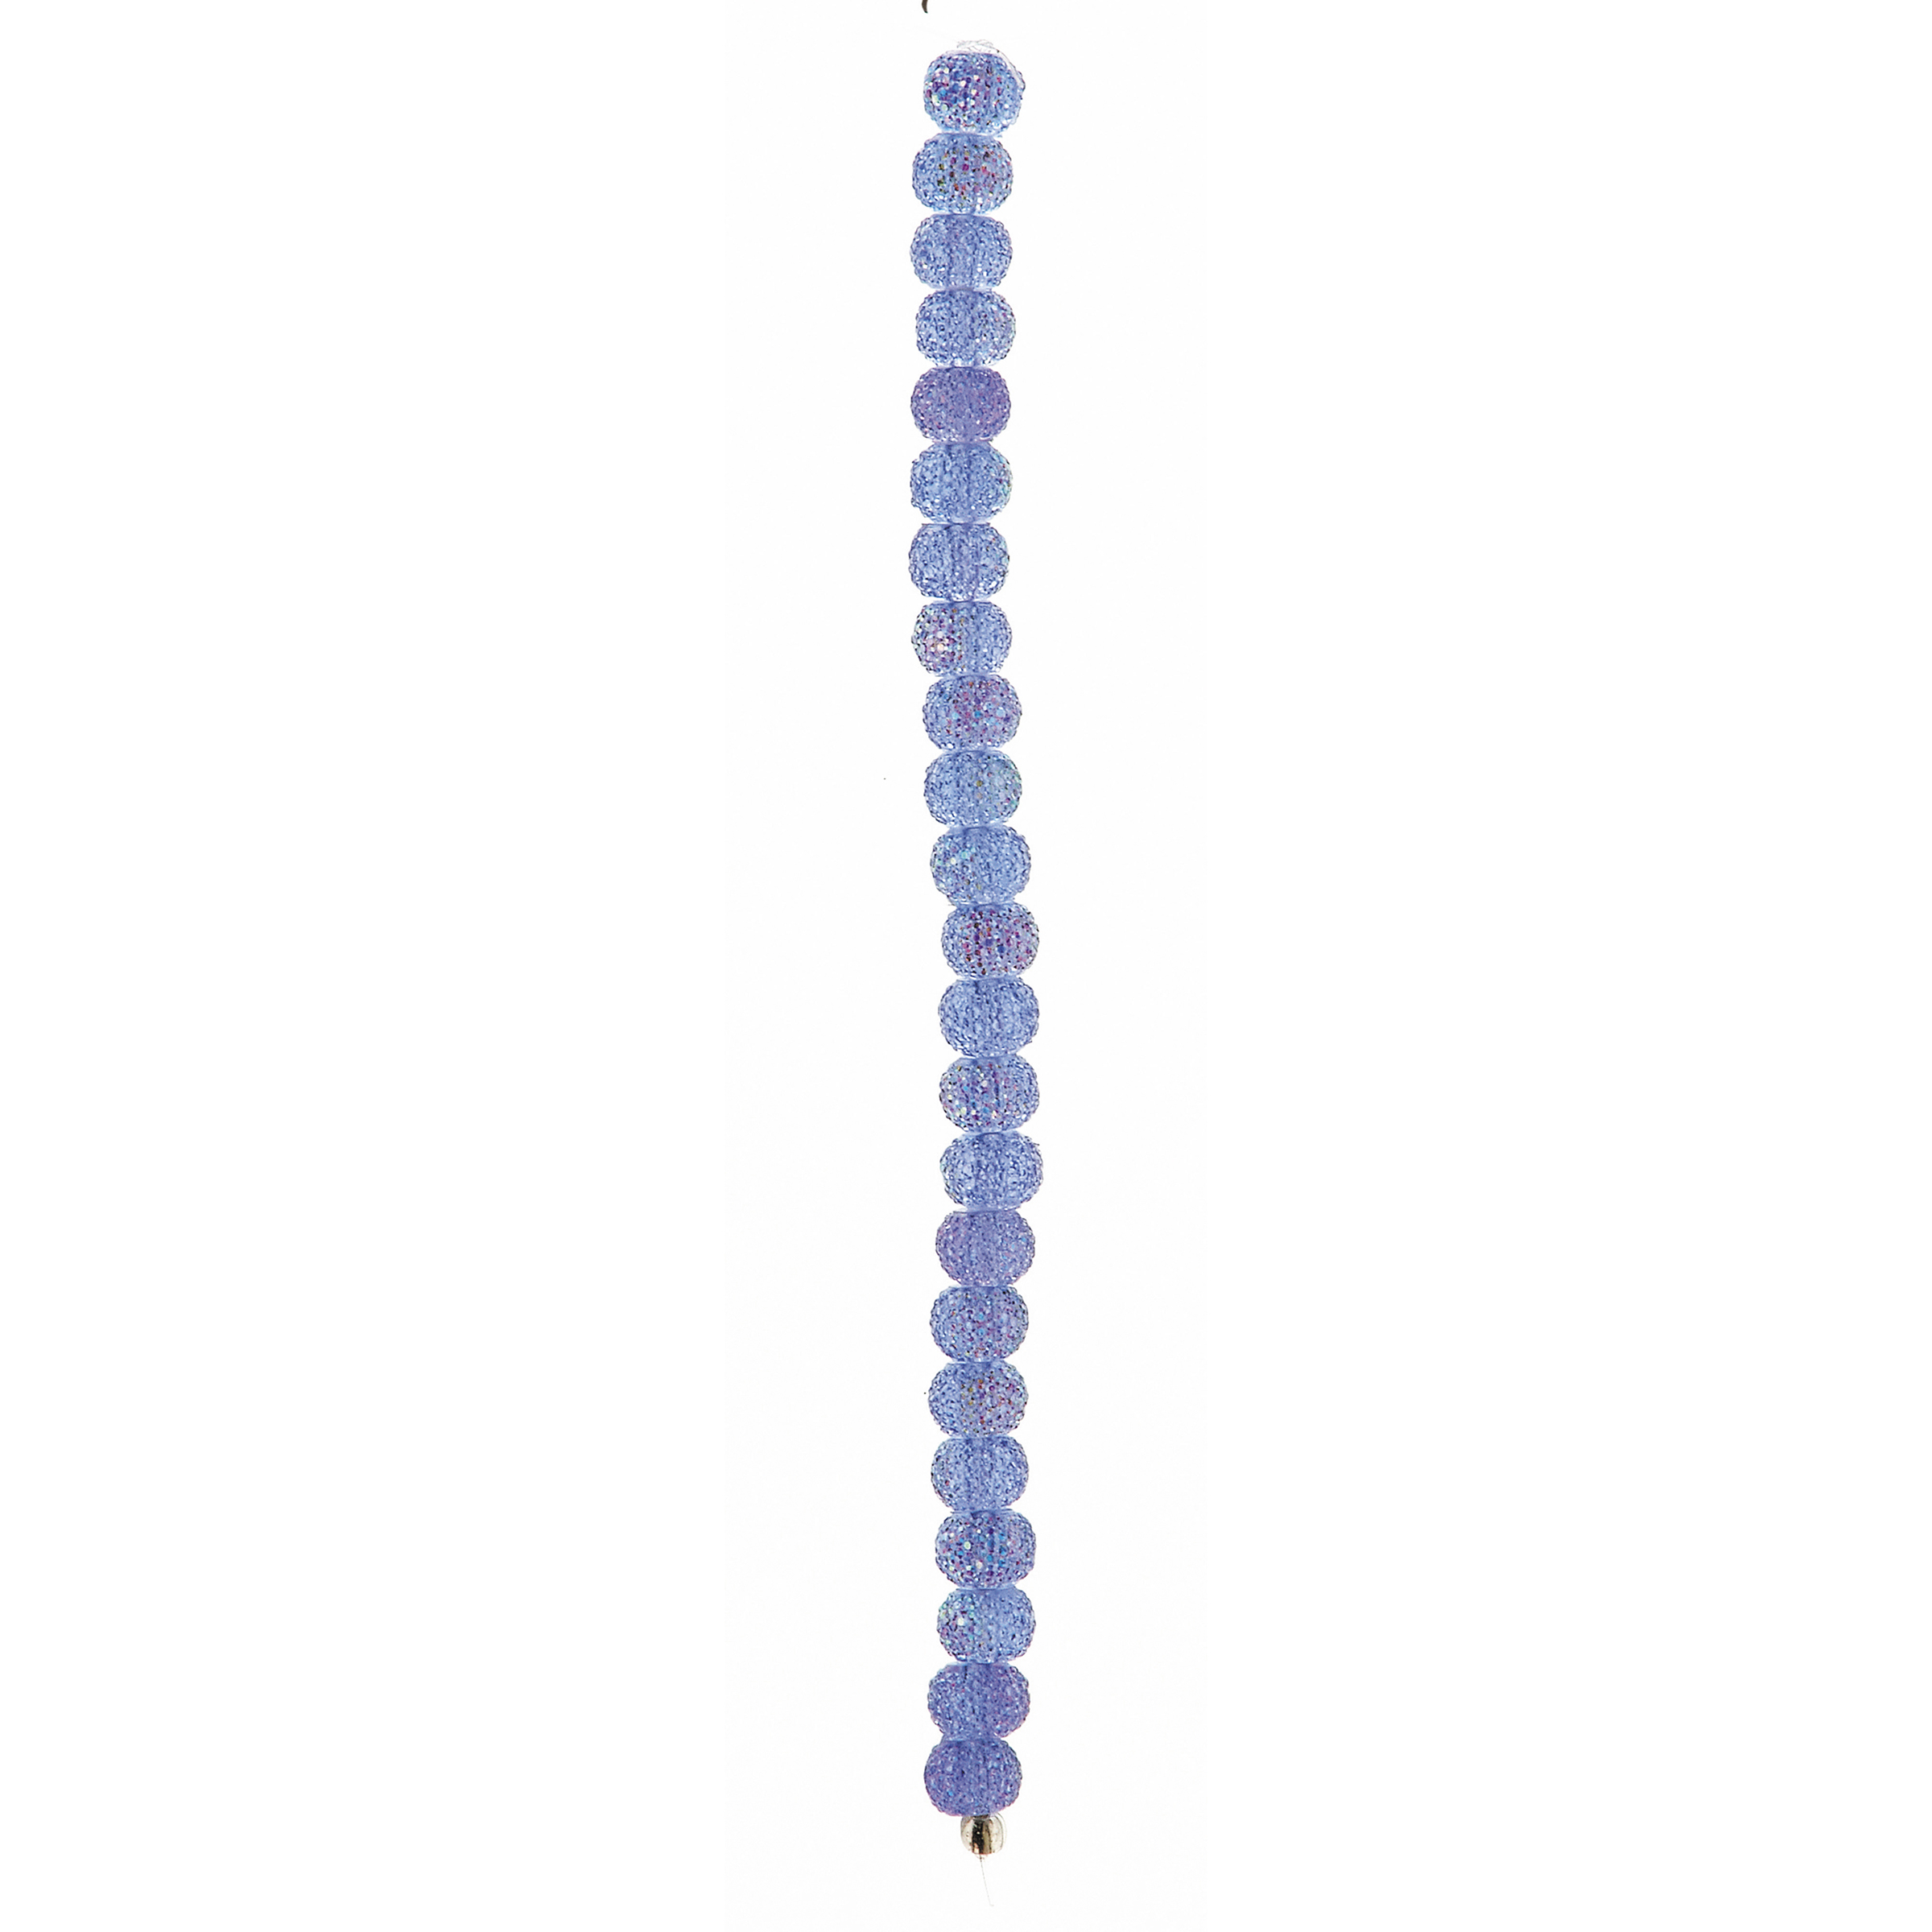 "7"" Strand Acrylic Glitter Beads, Light Sapphire, 8 x 10mm"